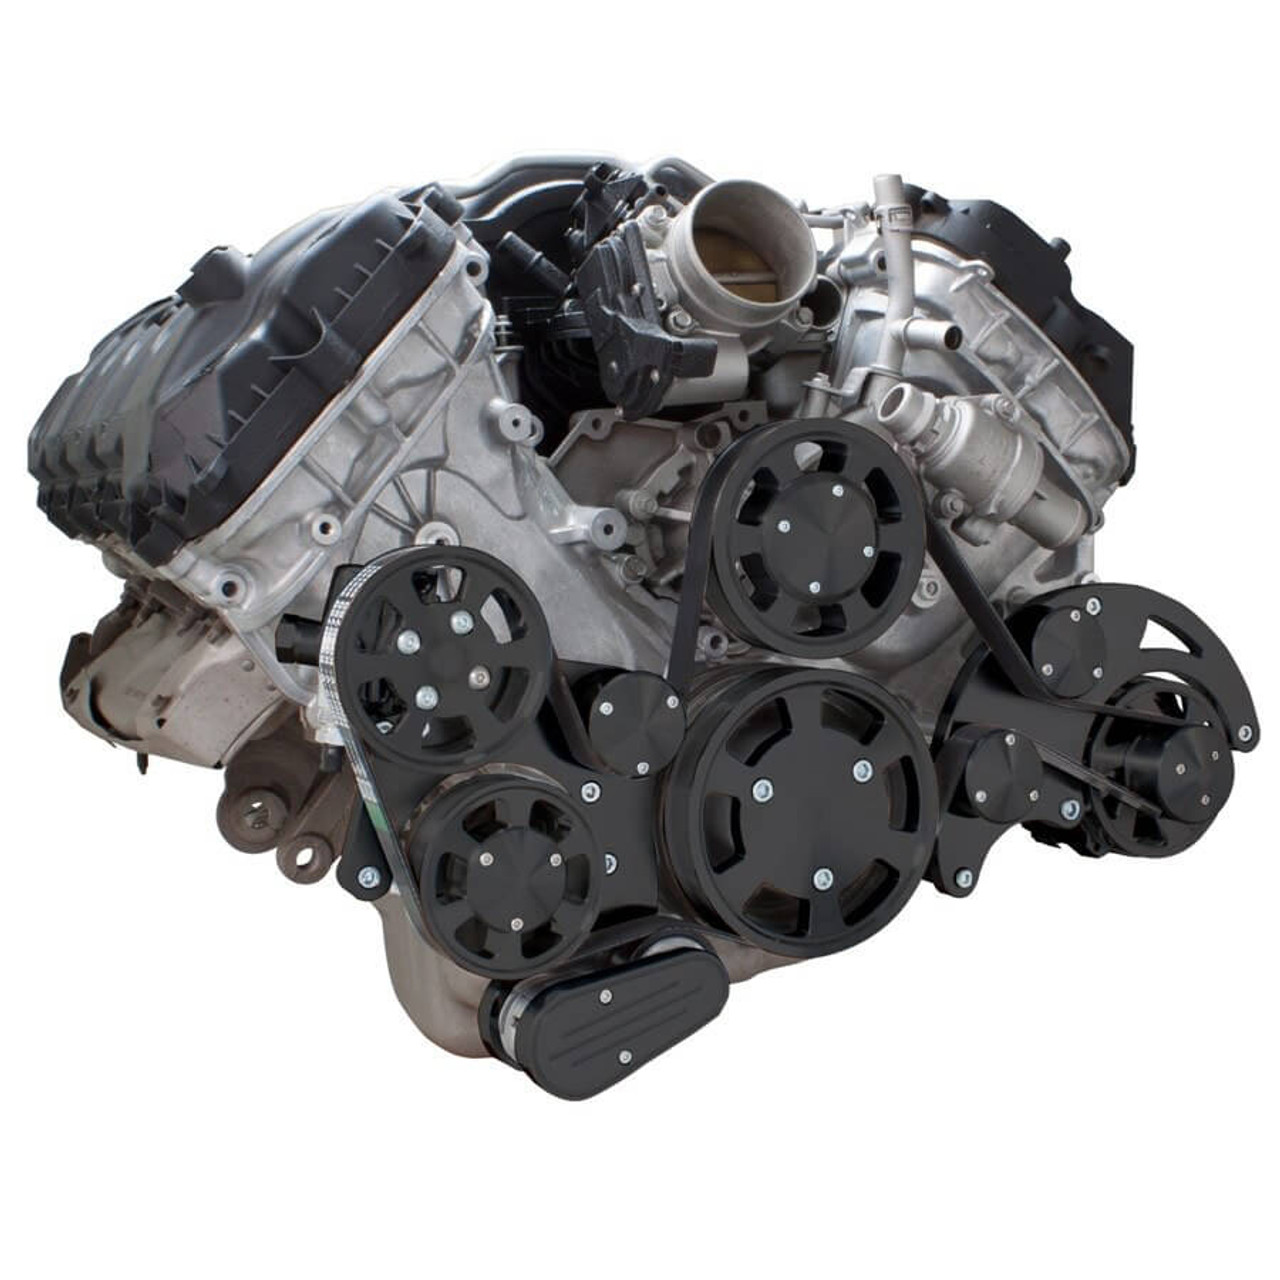 ... Stealth Black Serpentine System for Ford Coyote 5.0 - Alternator &  Power Steering